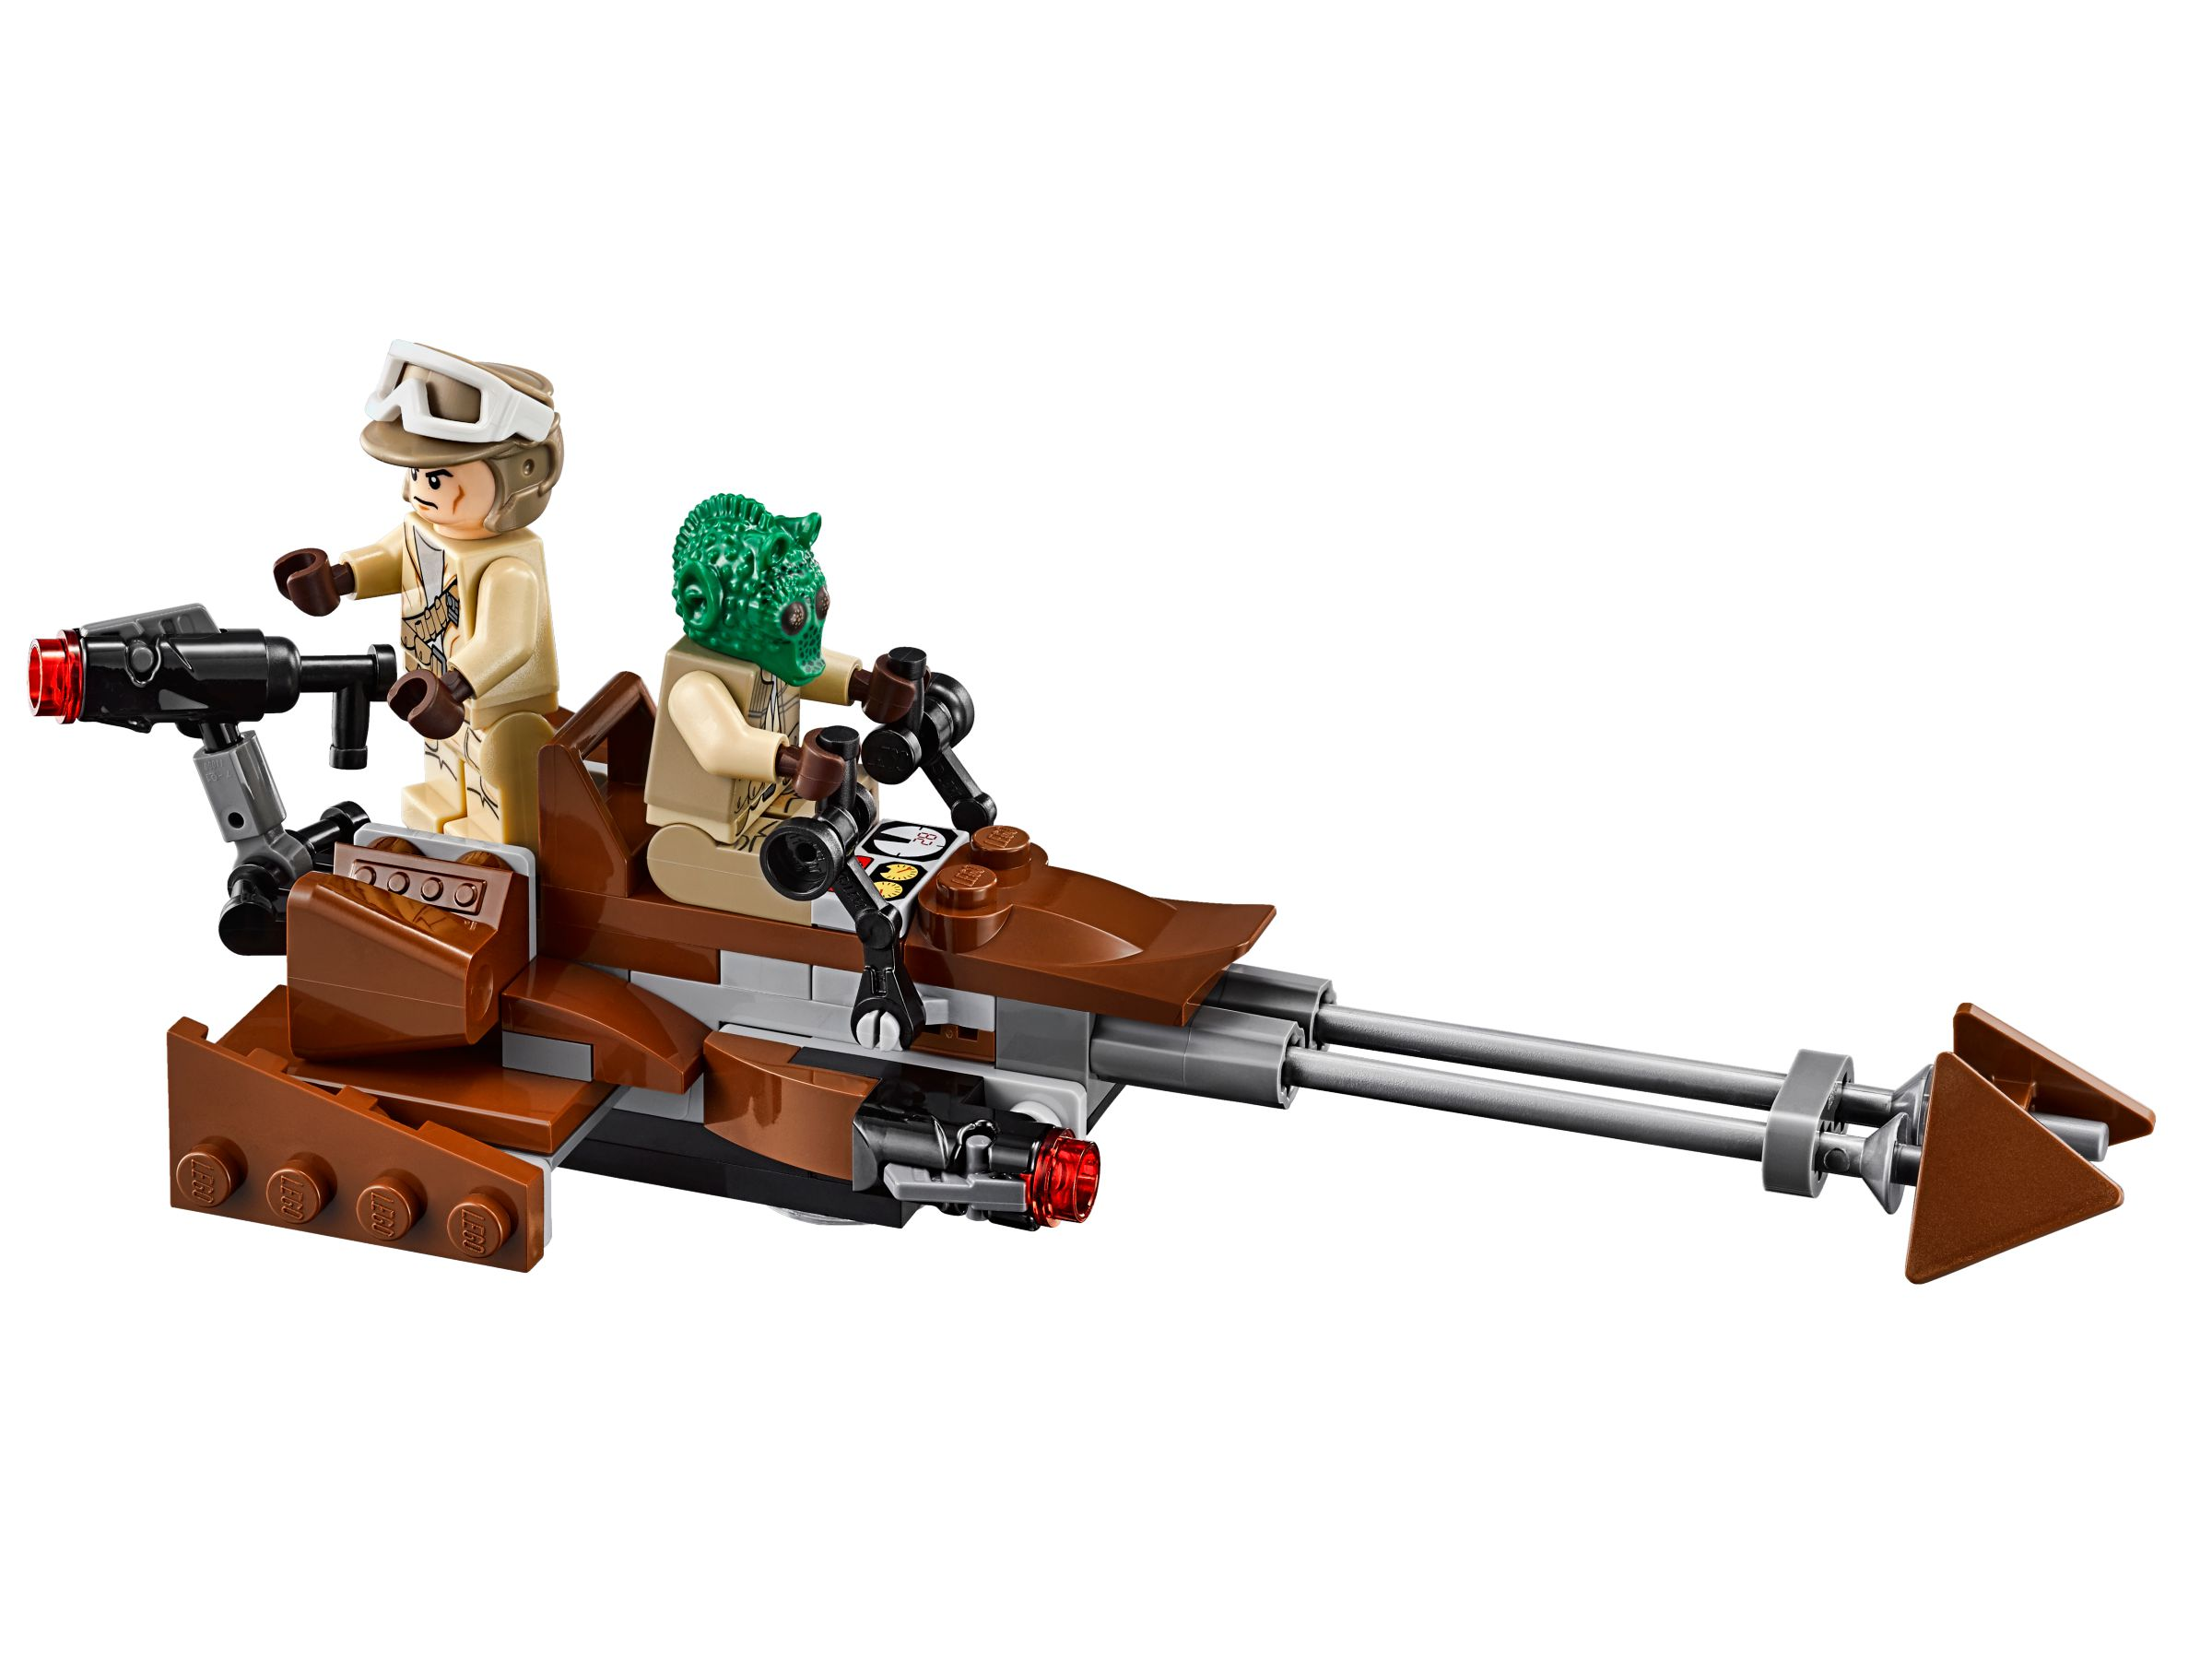 LEGO Star Wars 75133 Rebel Alliance Battle Pack LEGO_75133_alt2.jpg